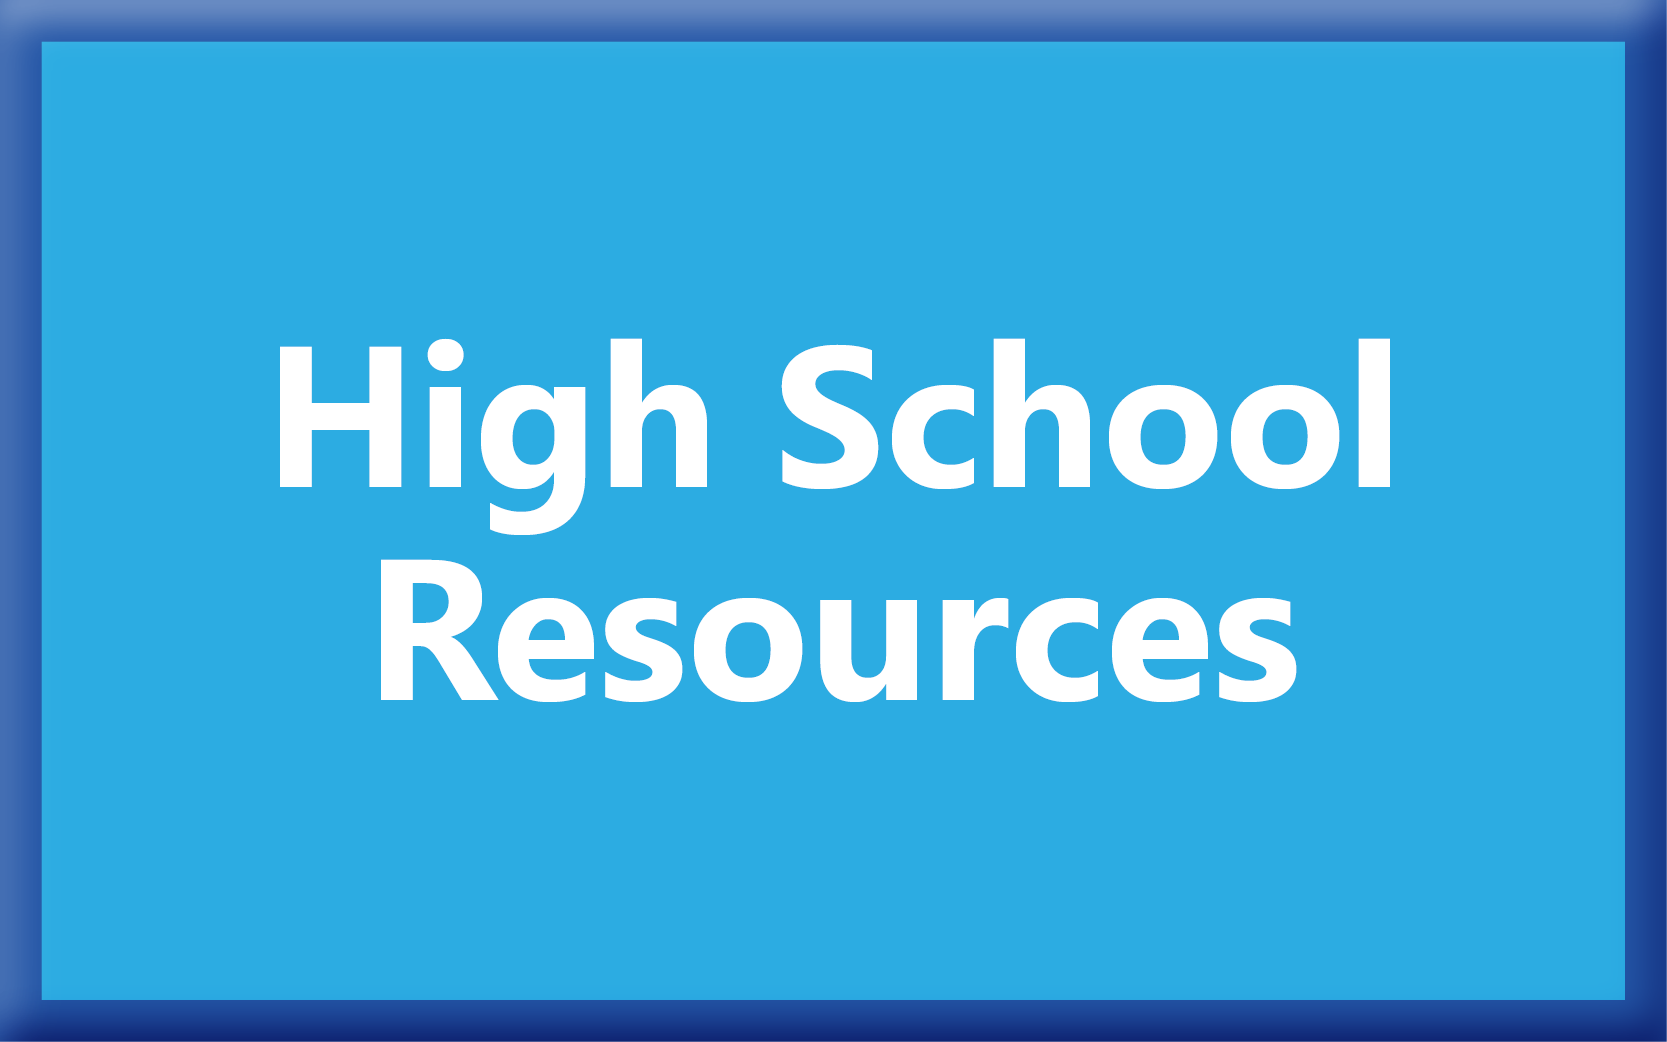 High School Resources